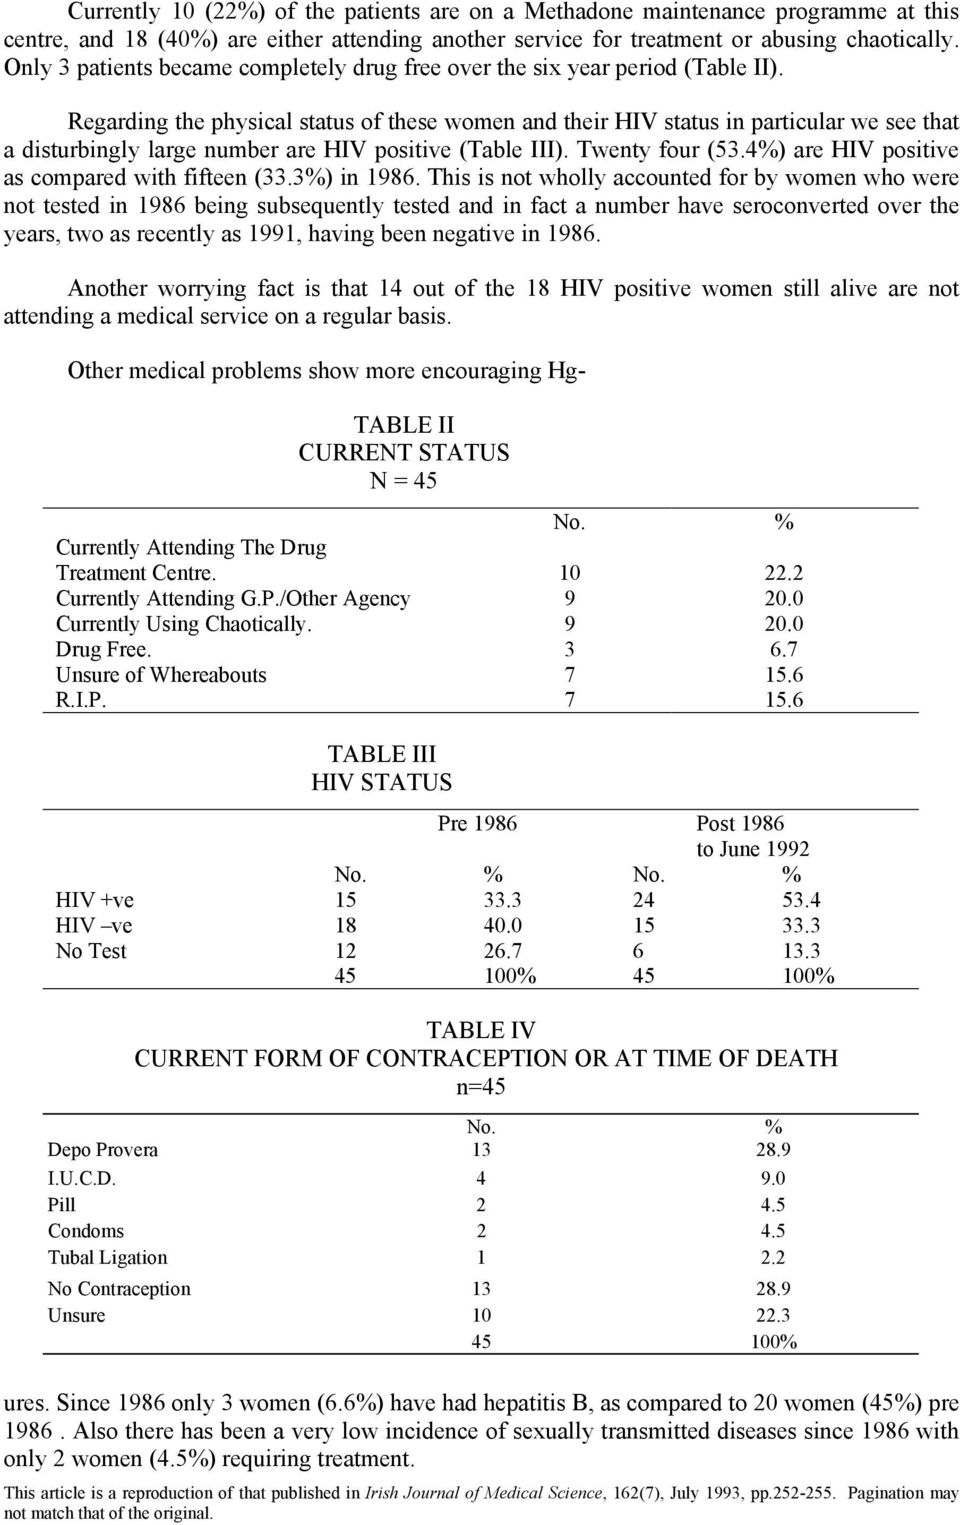 Regarding the physical status of these women and their HIV status in particular we see that a disturbingly large number are HIV positive (Table III). Twenty four (53.